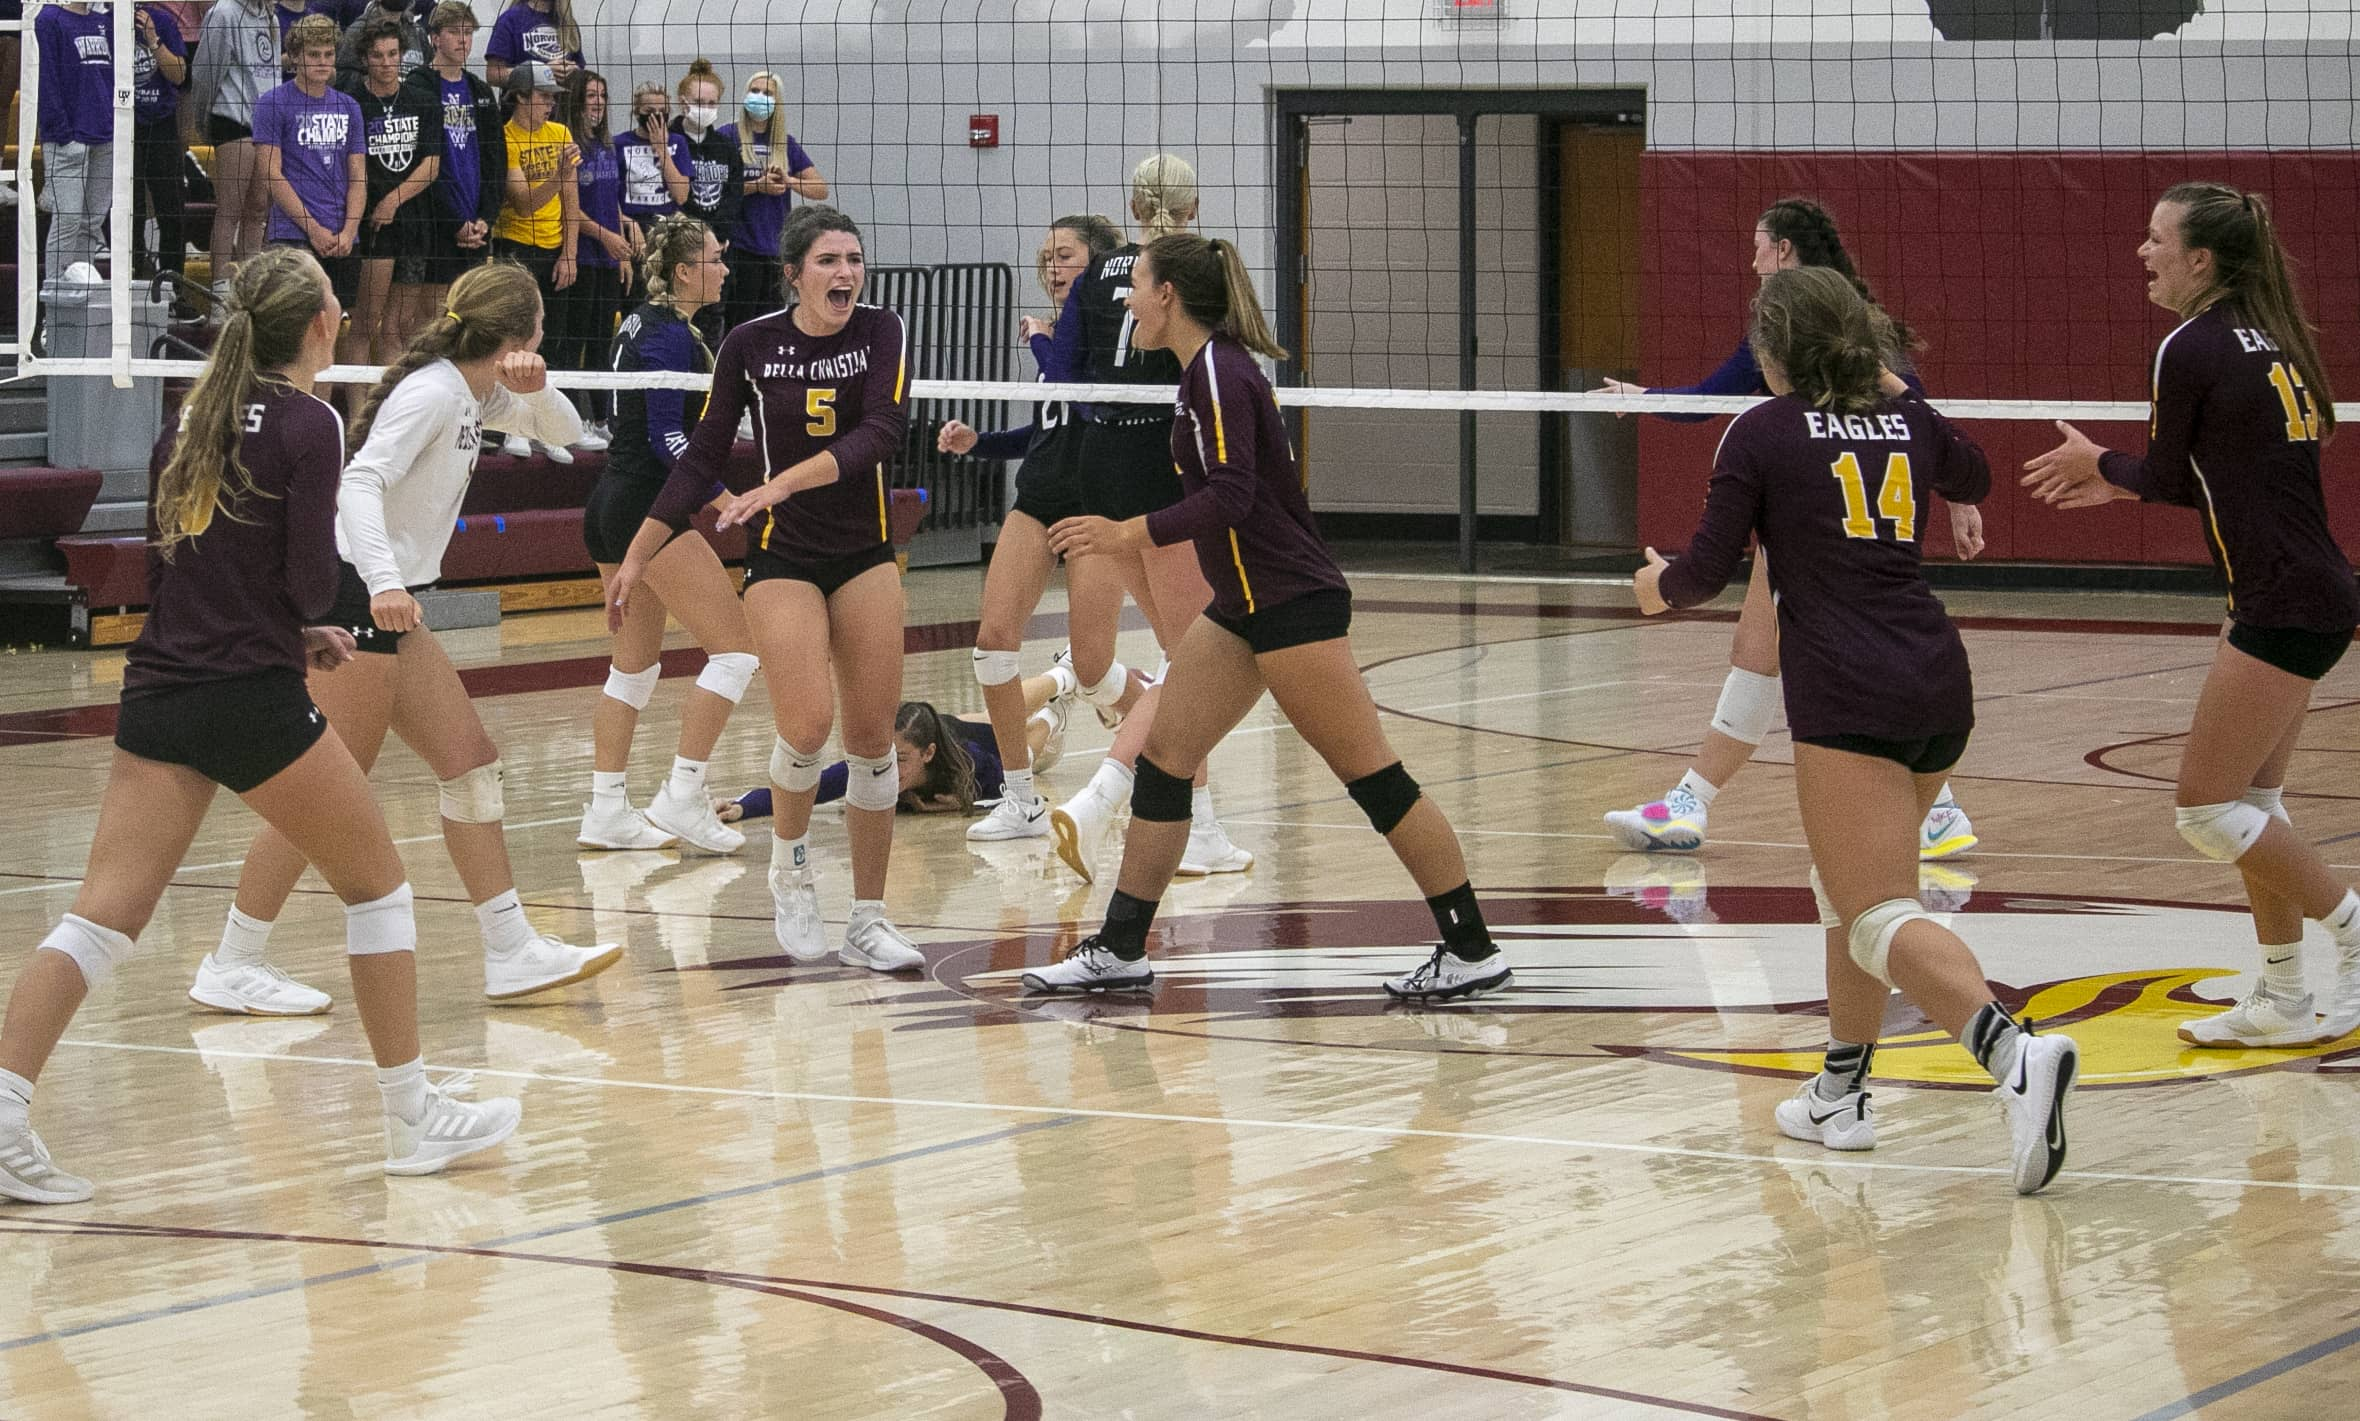 Eagles Volleyball Team Finds Victory in Eddyville Thursday